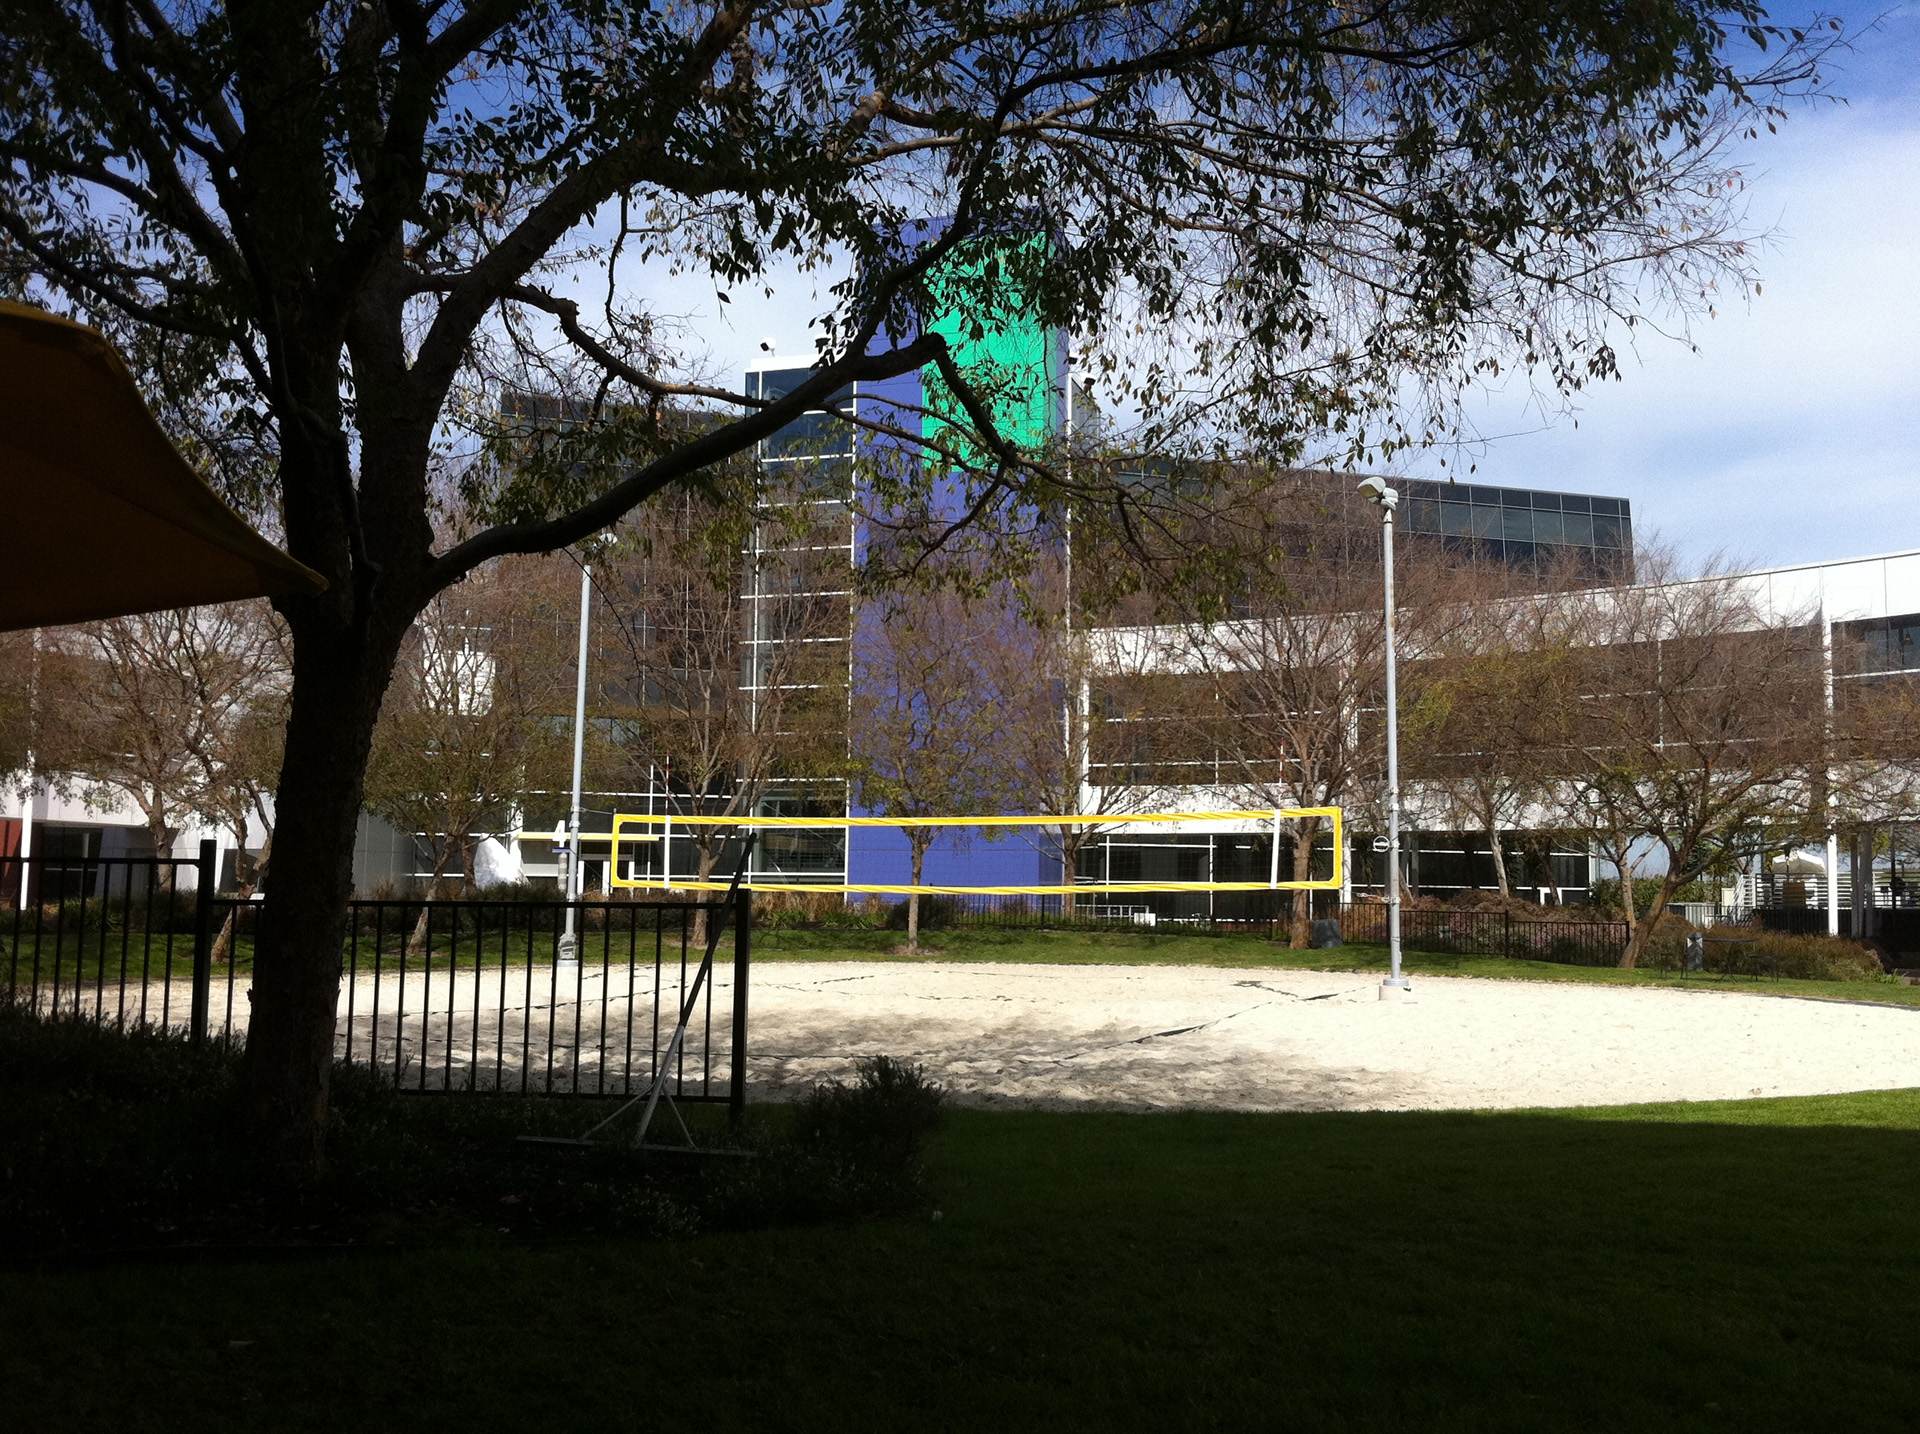 Google outside yard with a beach volley court for their employees to play